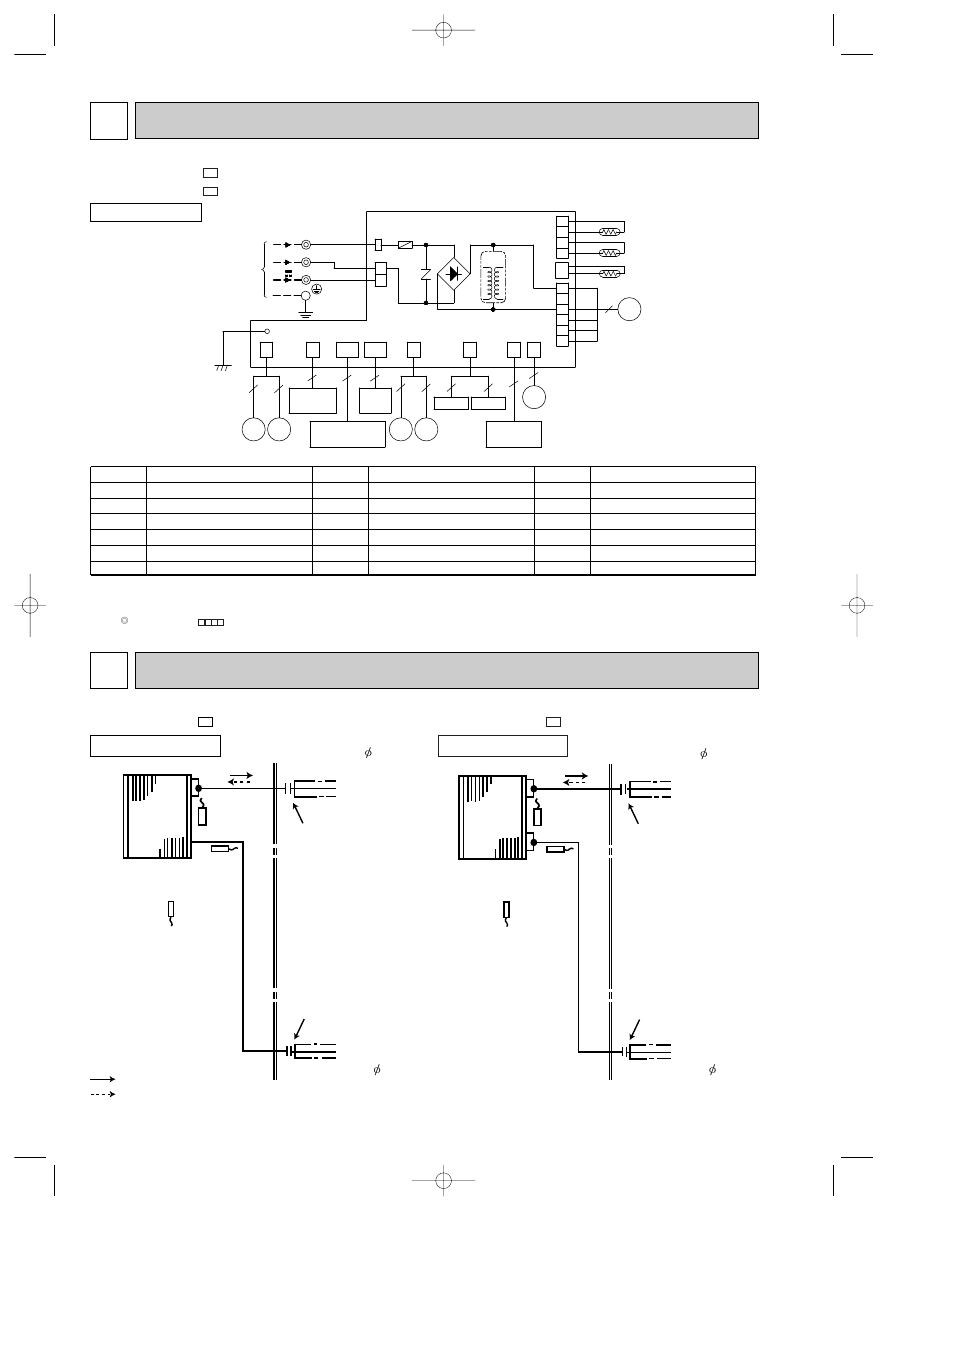 Mitsubishi 4m40 Wiring Diagram Libraries 1998 Fe6 Msz Schematic Diagrams6wiring Refrigerant System 7 Fa25va